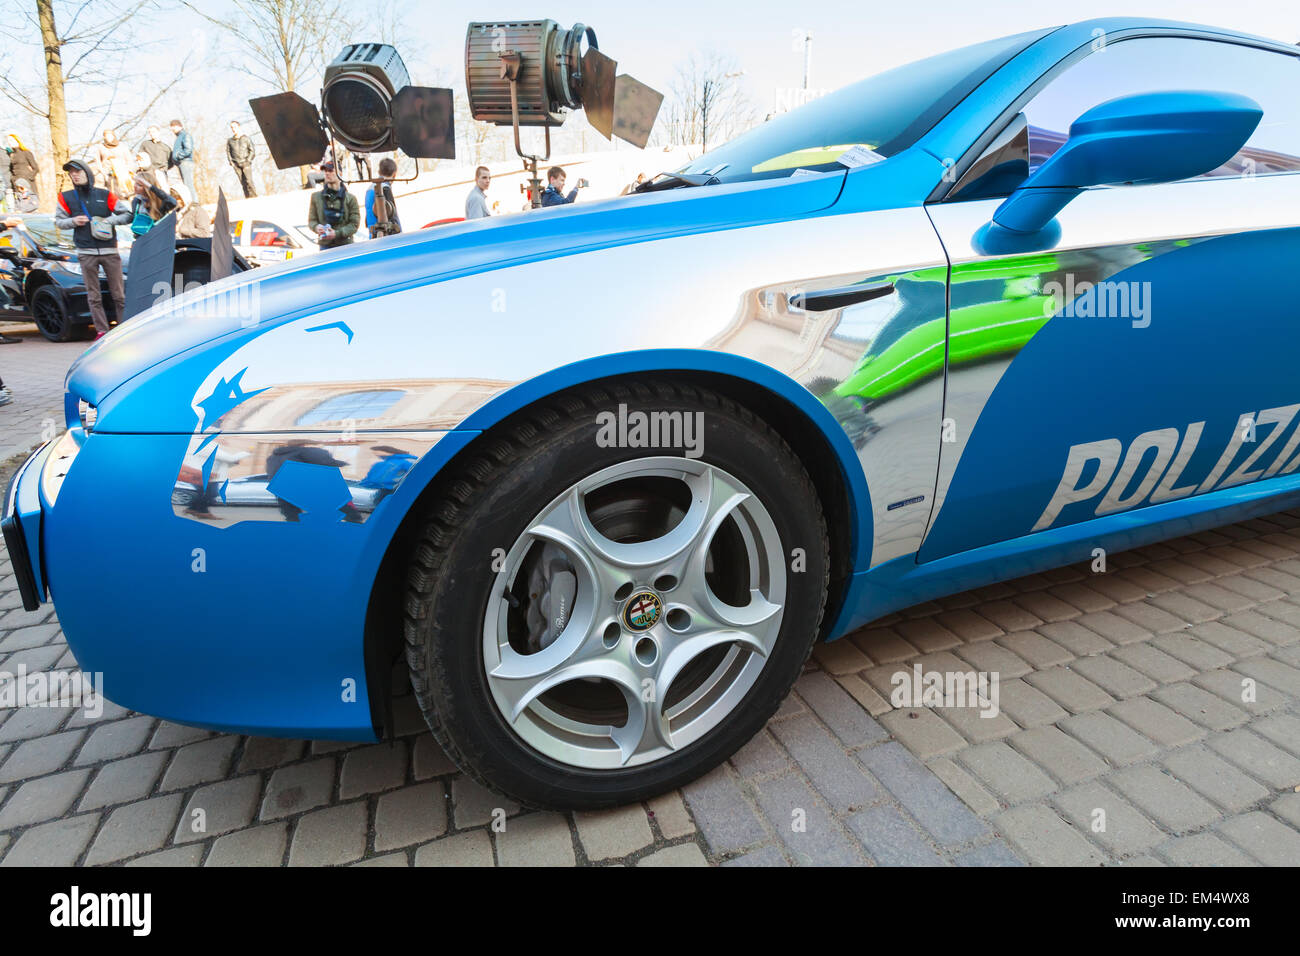 Alfa Brera Stock Photos Images Alamy New Small Circle Blue Saint Petersburg Russia April 11 2015 Afla Romeo Car